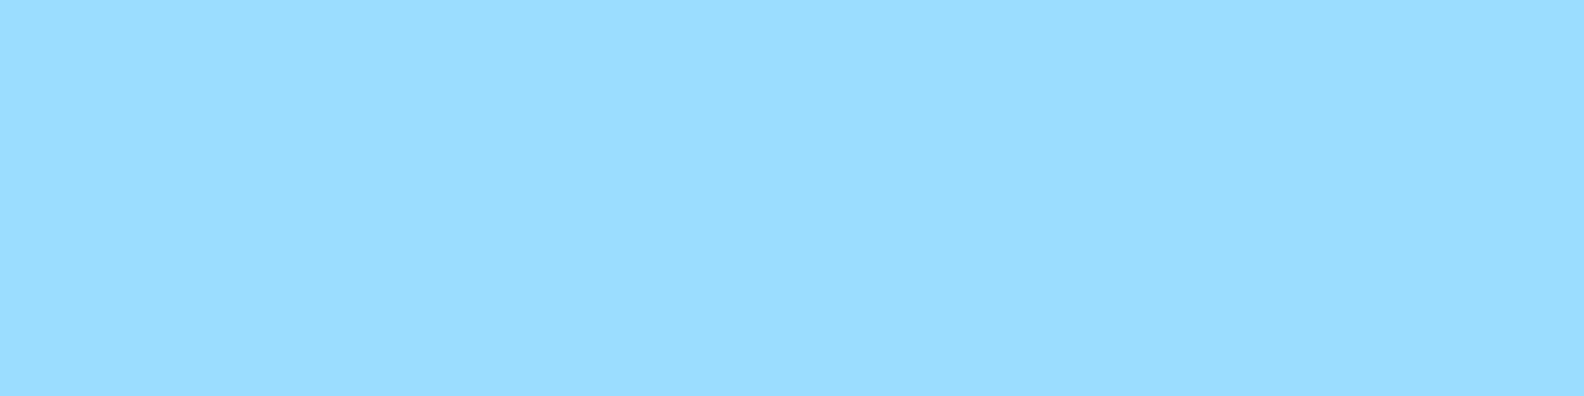 1584x396 Columbia Blue Solid Color Background